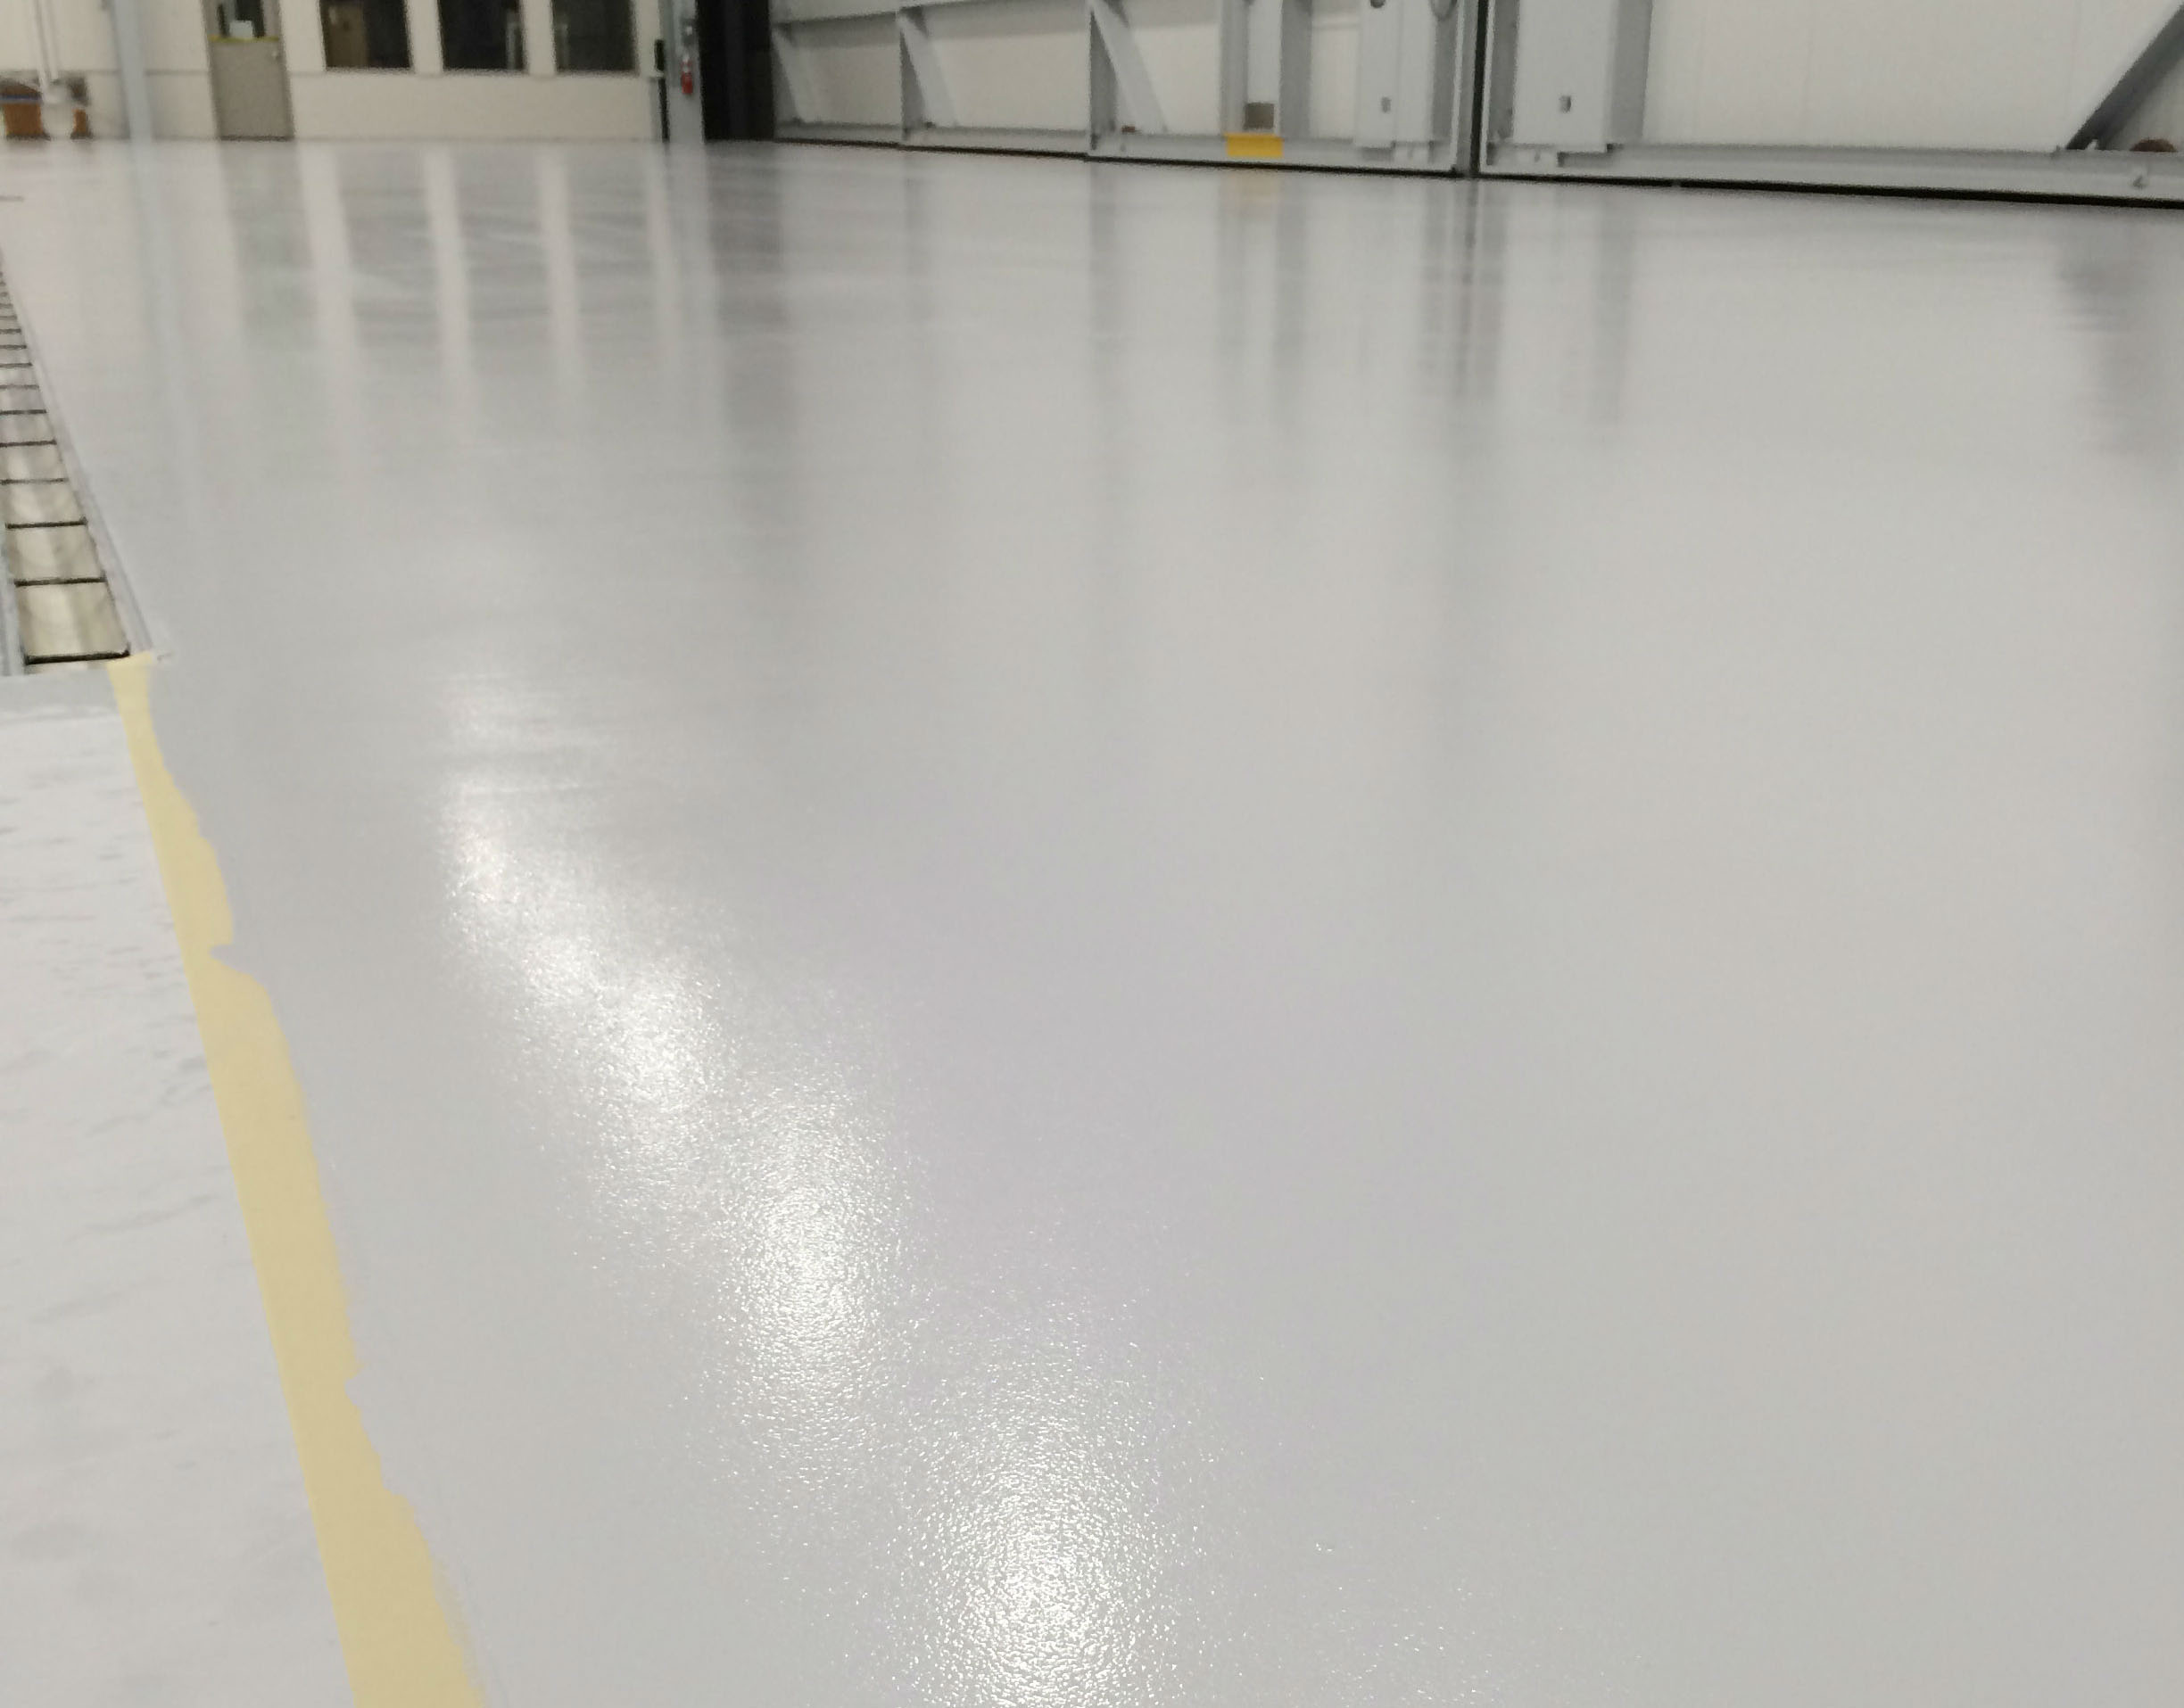 Polished Concrete Flooring : Applied flooring gives corporate hangar an aesthetic